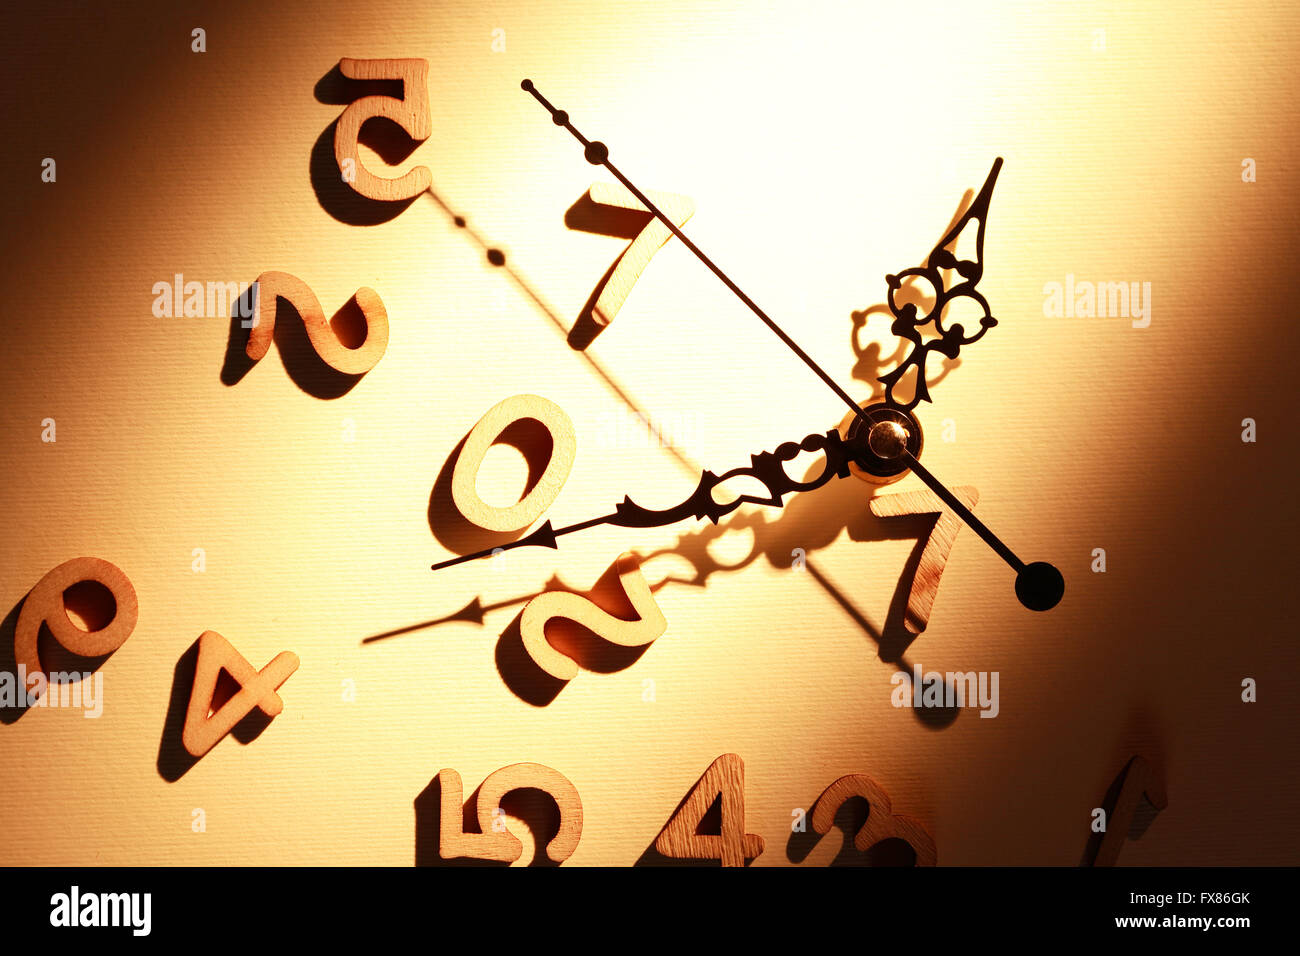 Time concept. Clock face near set of wooden digits - Stock Image